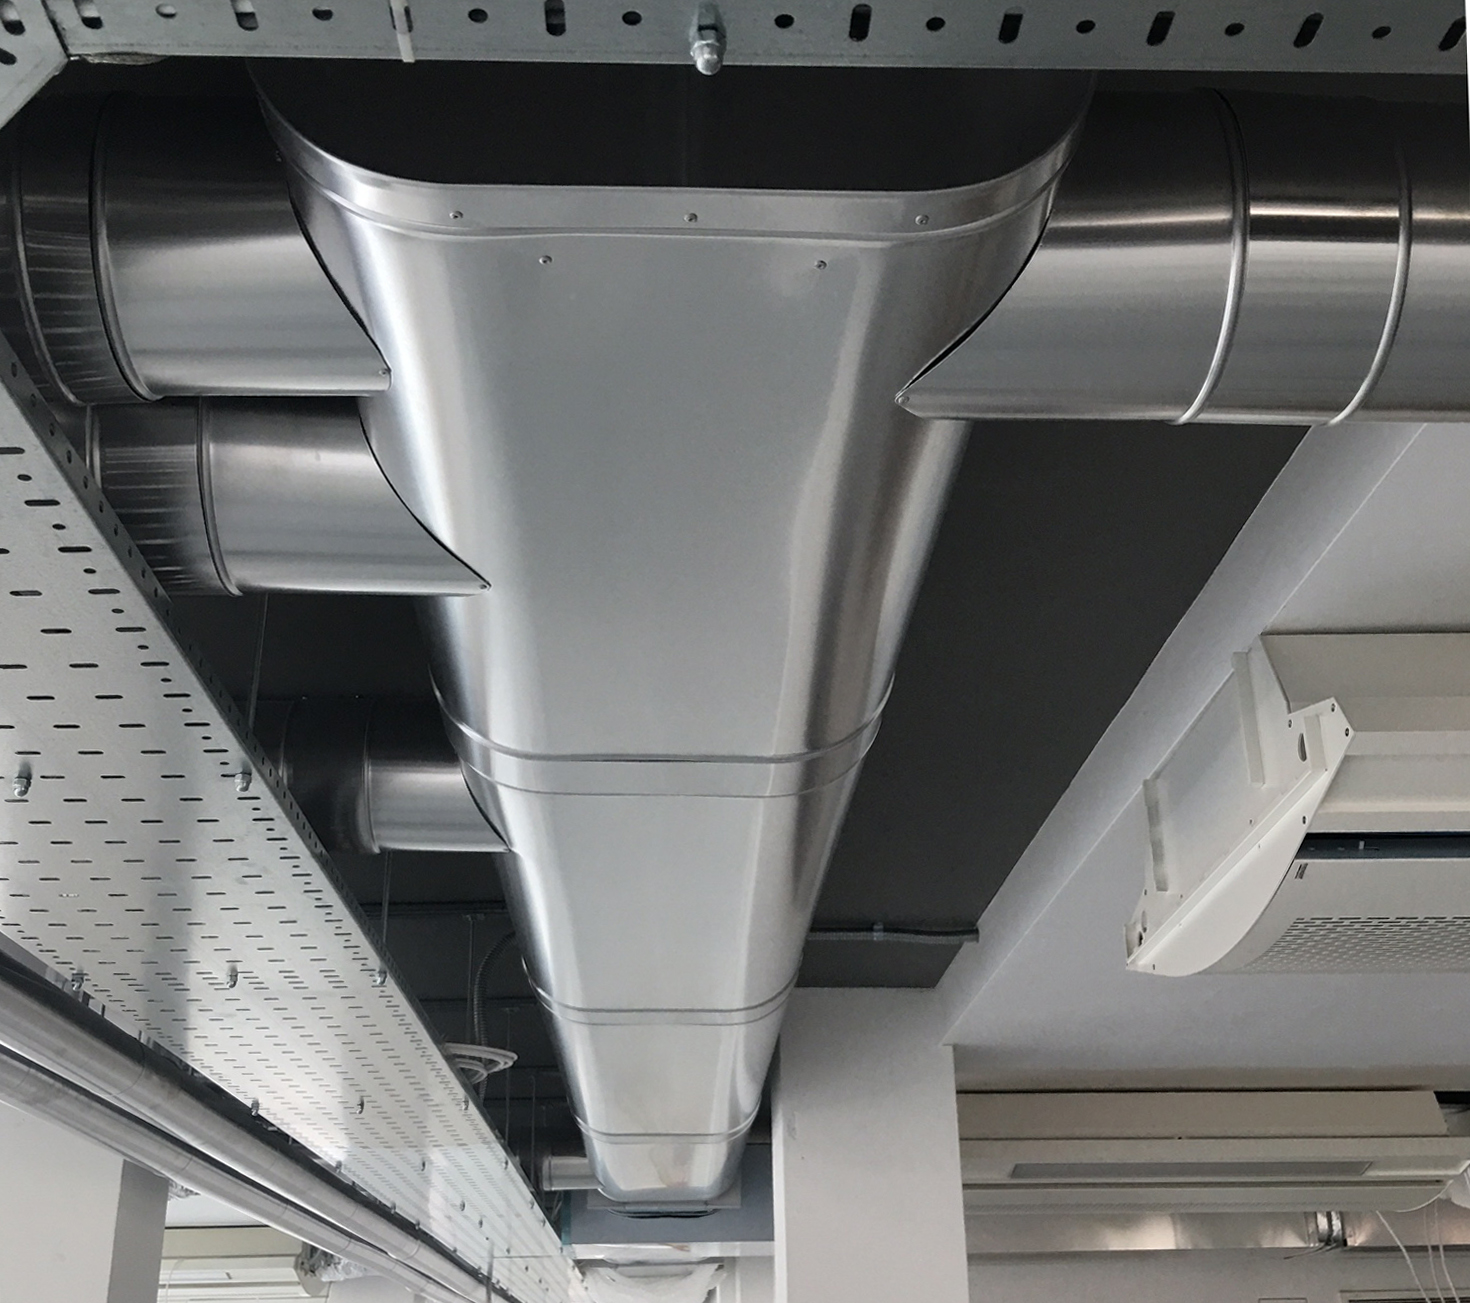 Ali clad insulated oval duct